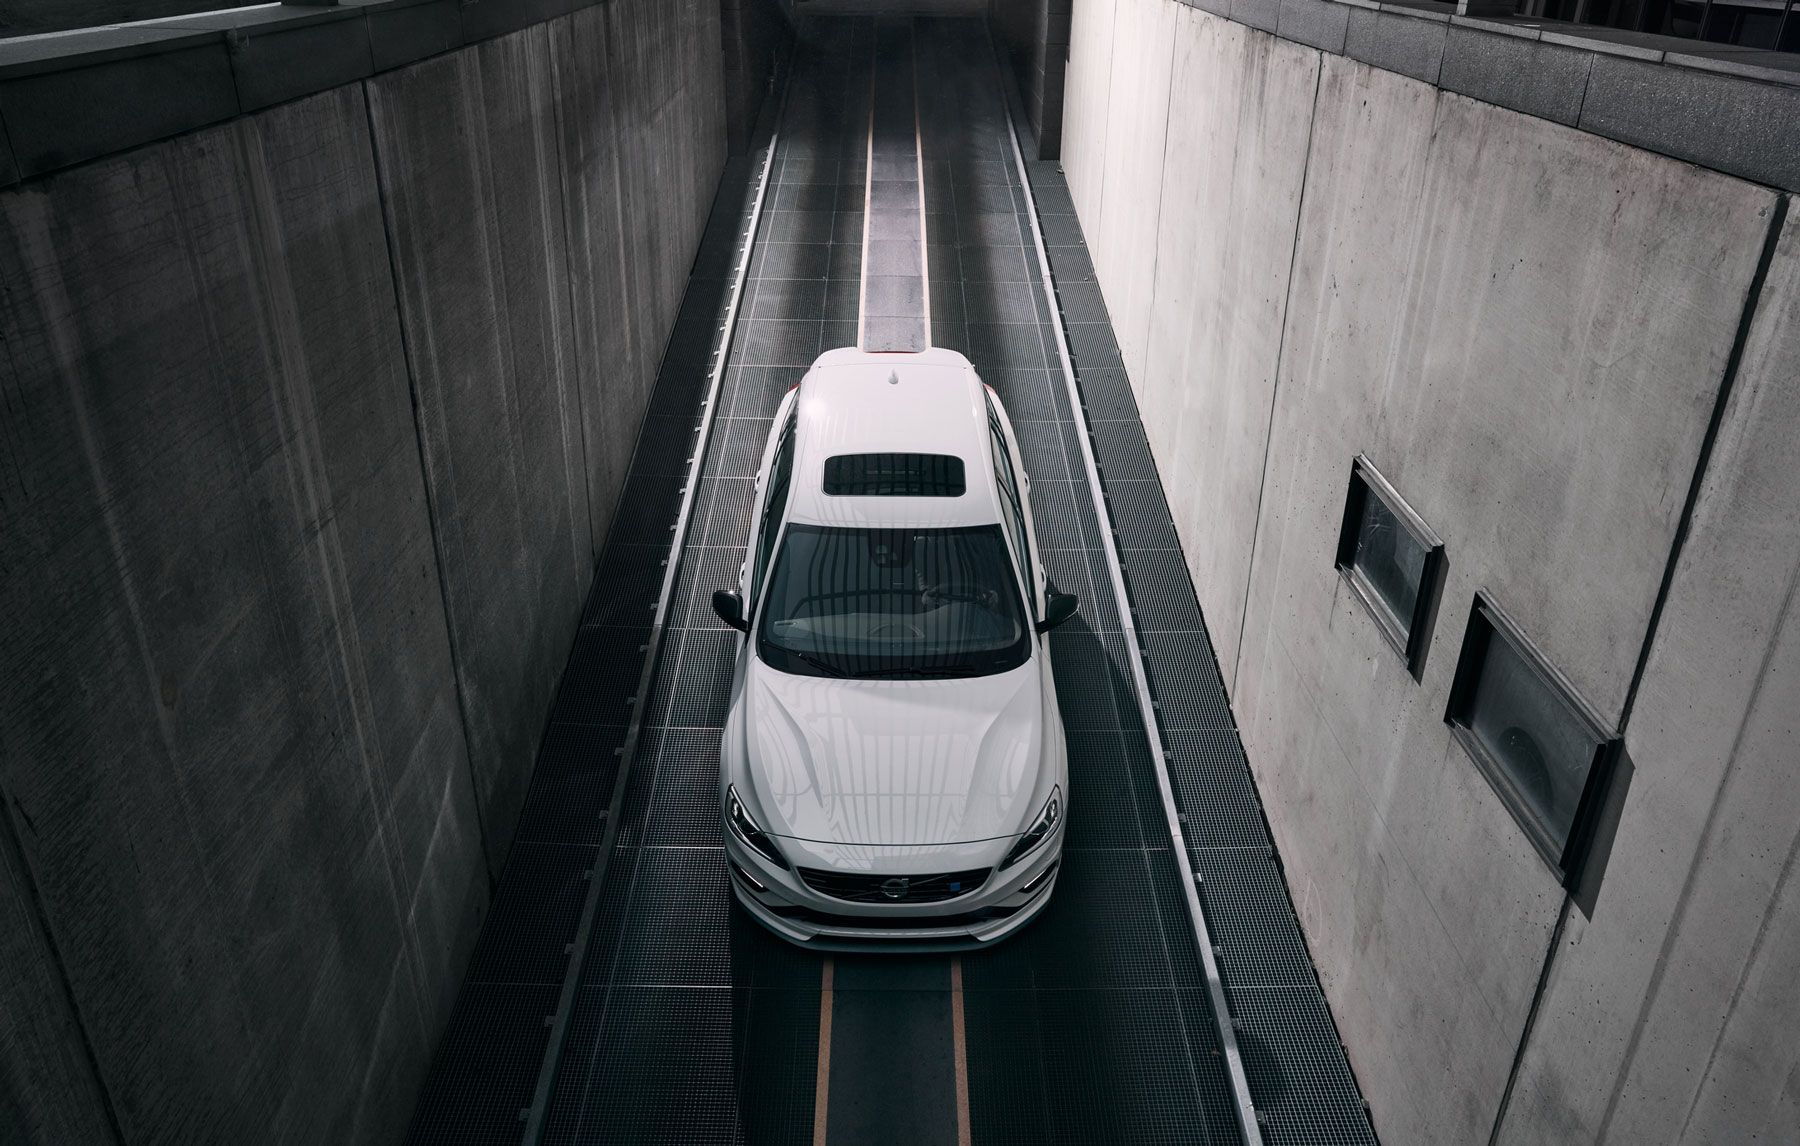 White Volvo driving on a road down something. Cement walls on each side